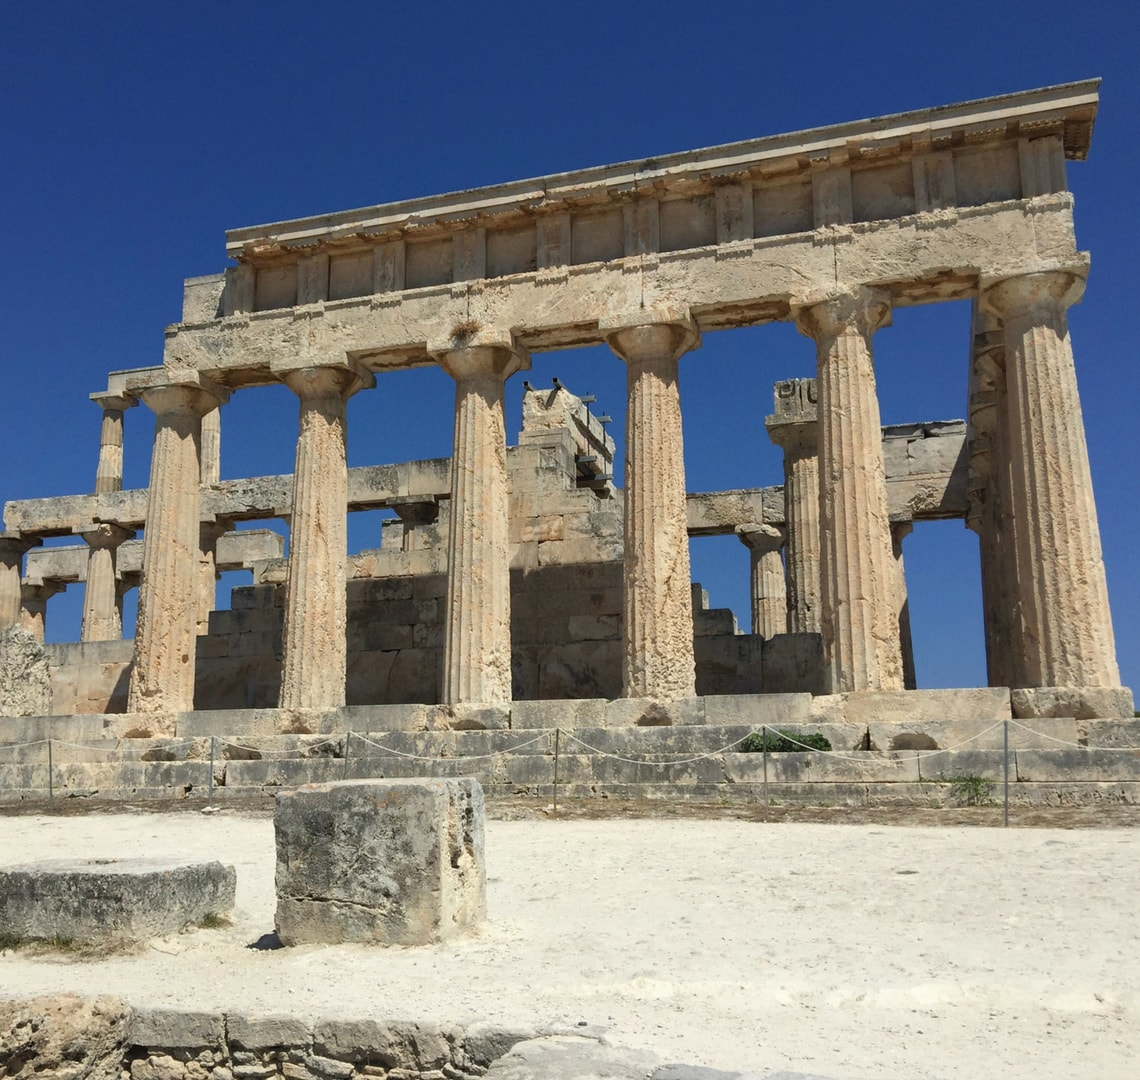 Super fun things to do in Lagos - Ancient Greek ruin against a clear blue sky